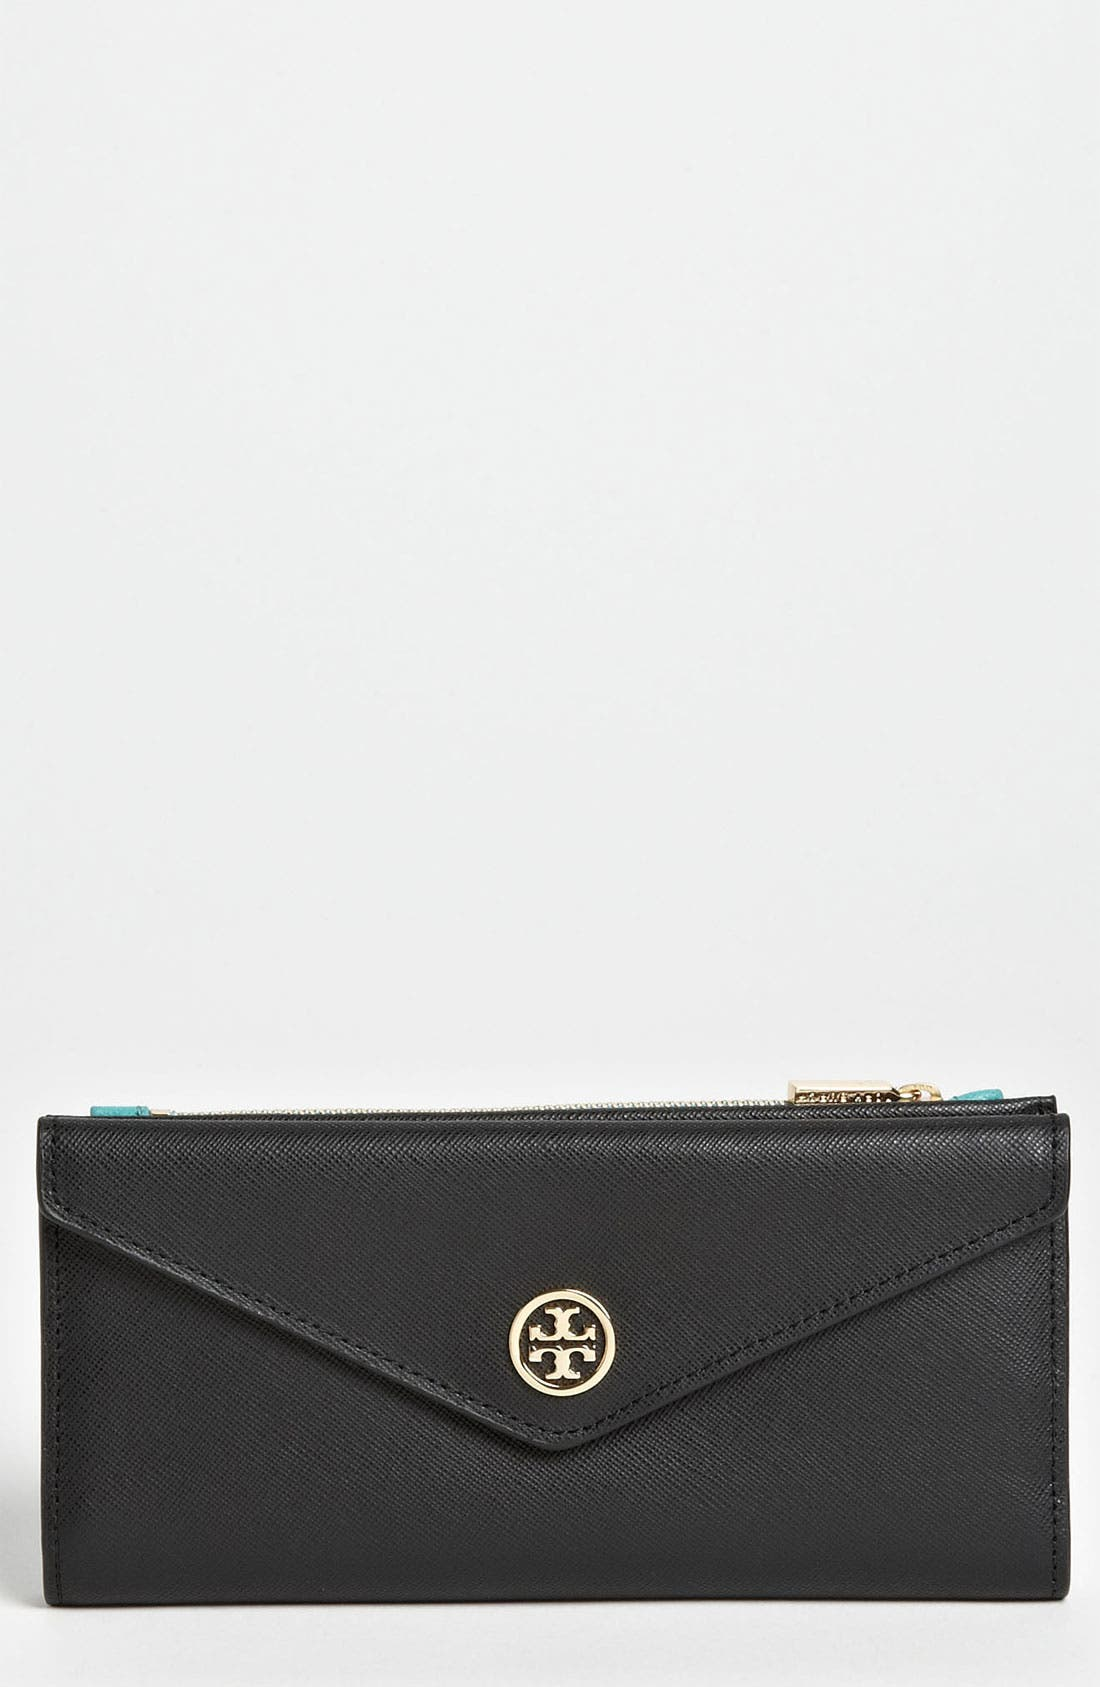 Alternate Image 1 Selected - Tory Burch 'Robinson' Envelope Wallet